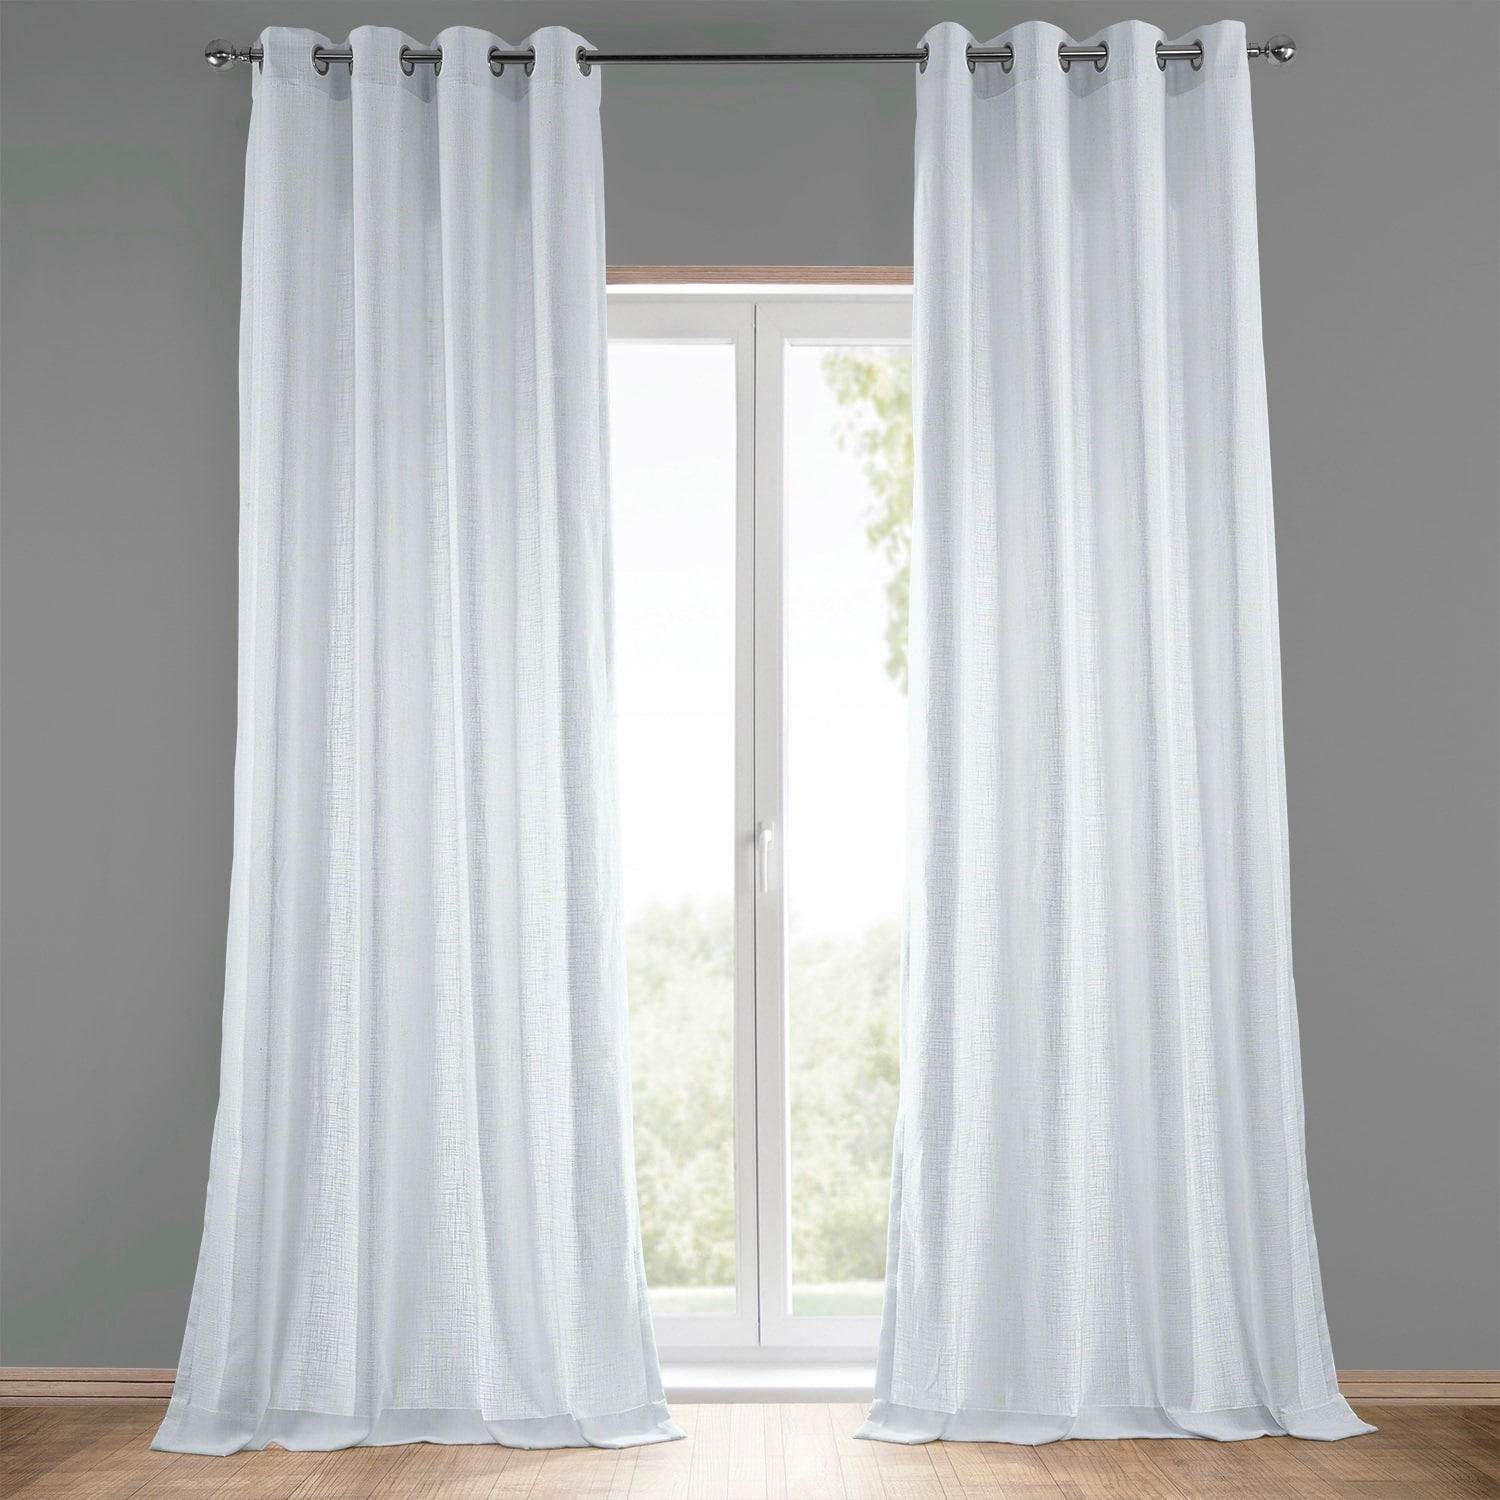 Buy White Grommet Heavy Faux Linen Curtains Panel